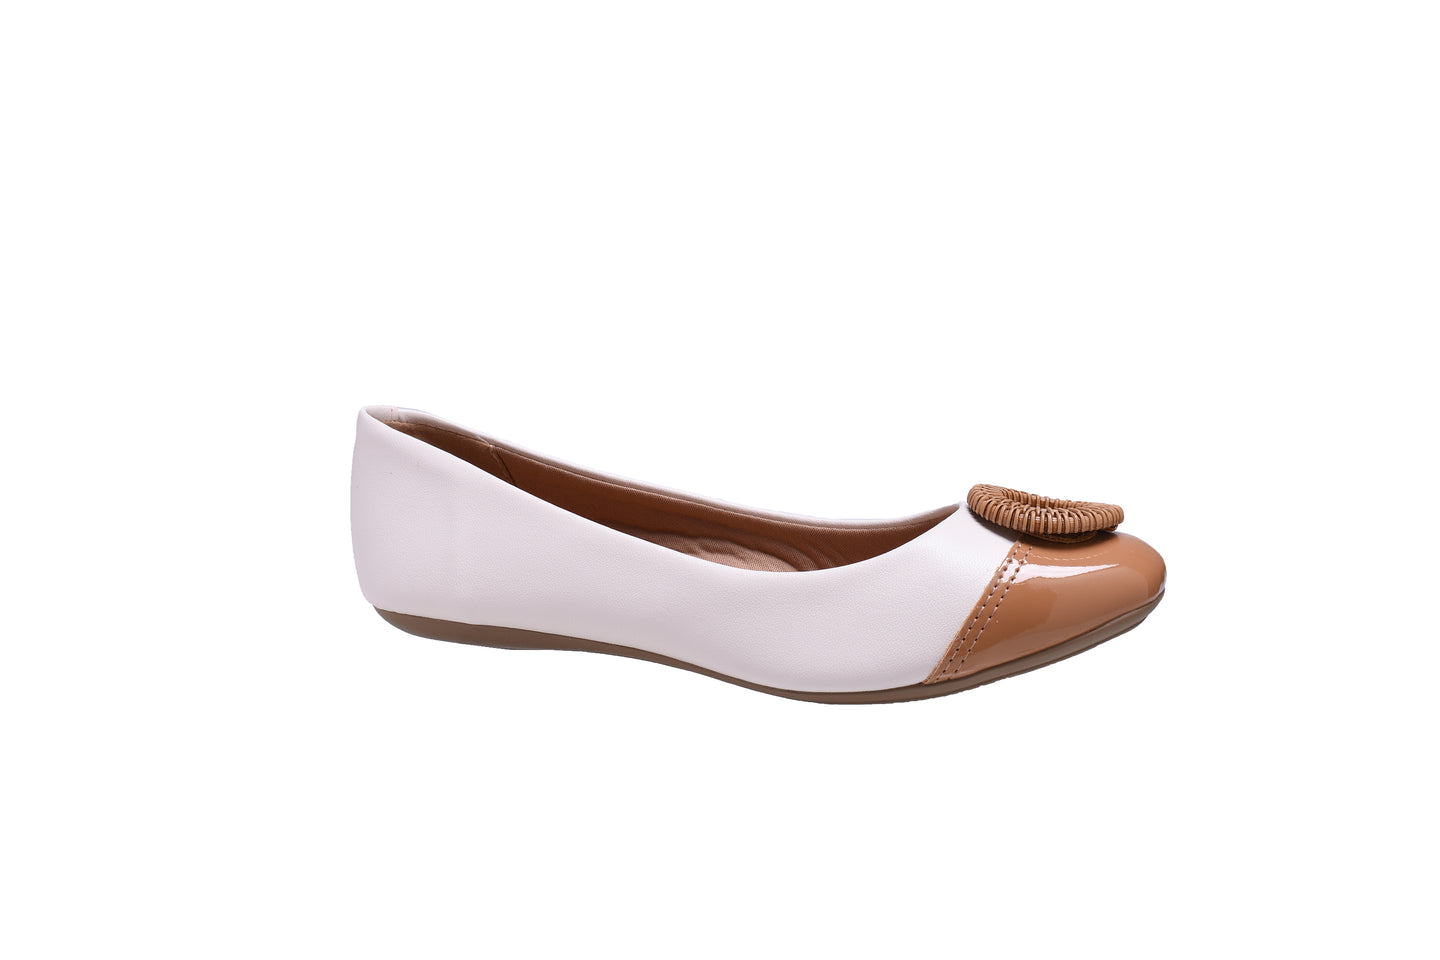 Pearl and Camel Ballerina Flats